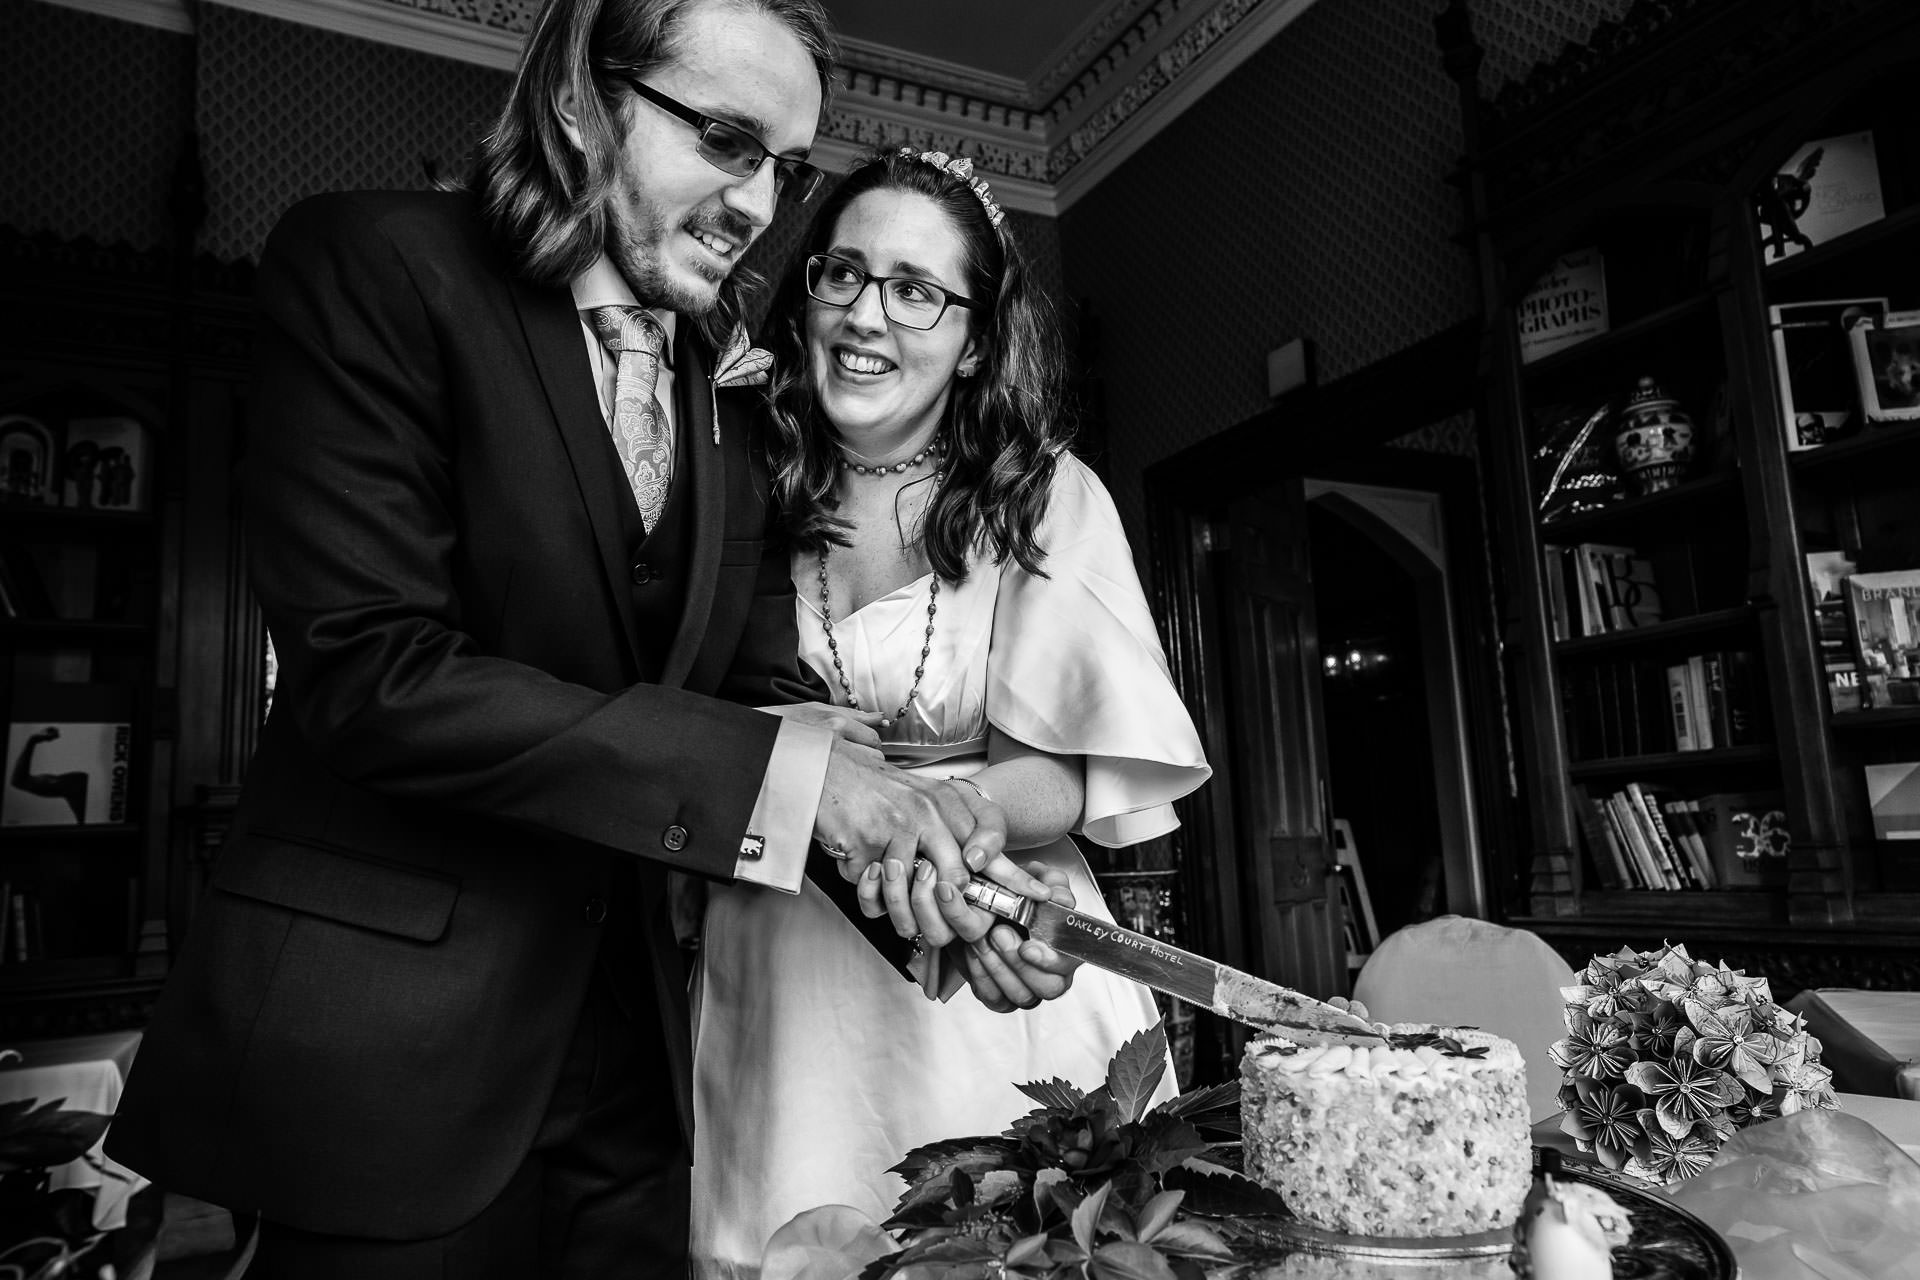 Berkshire Elopement Cake Cut Image | The wedding couple cutting their little wedding cake